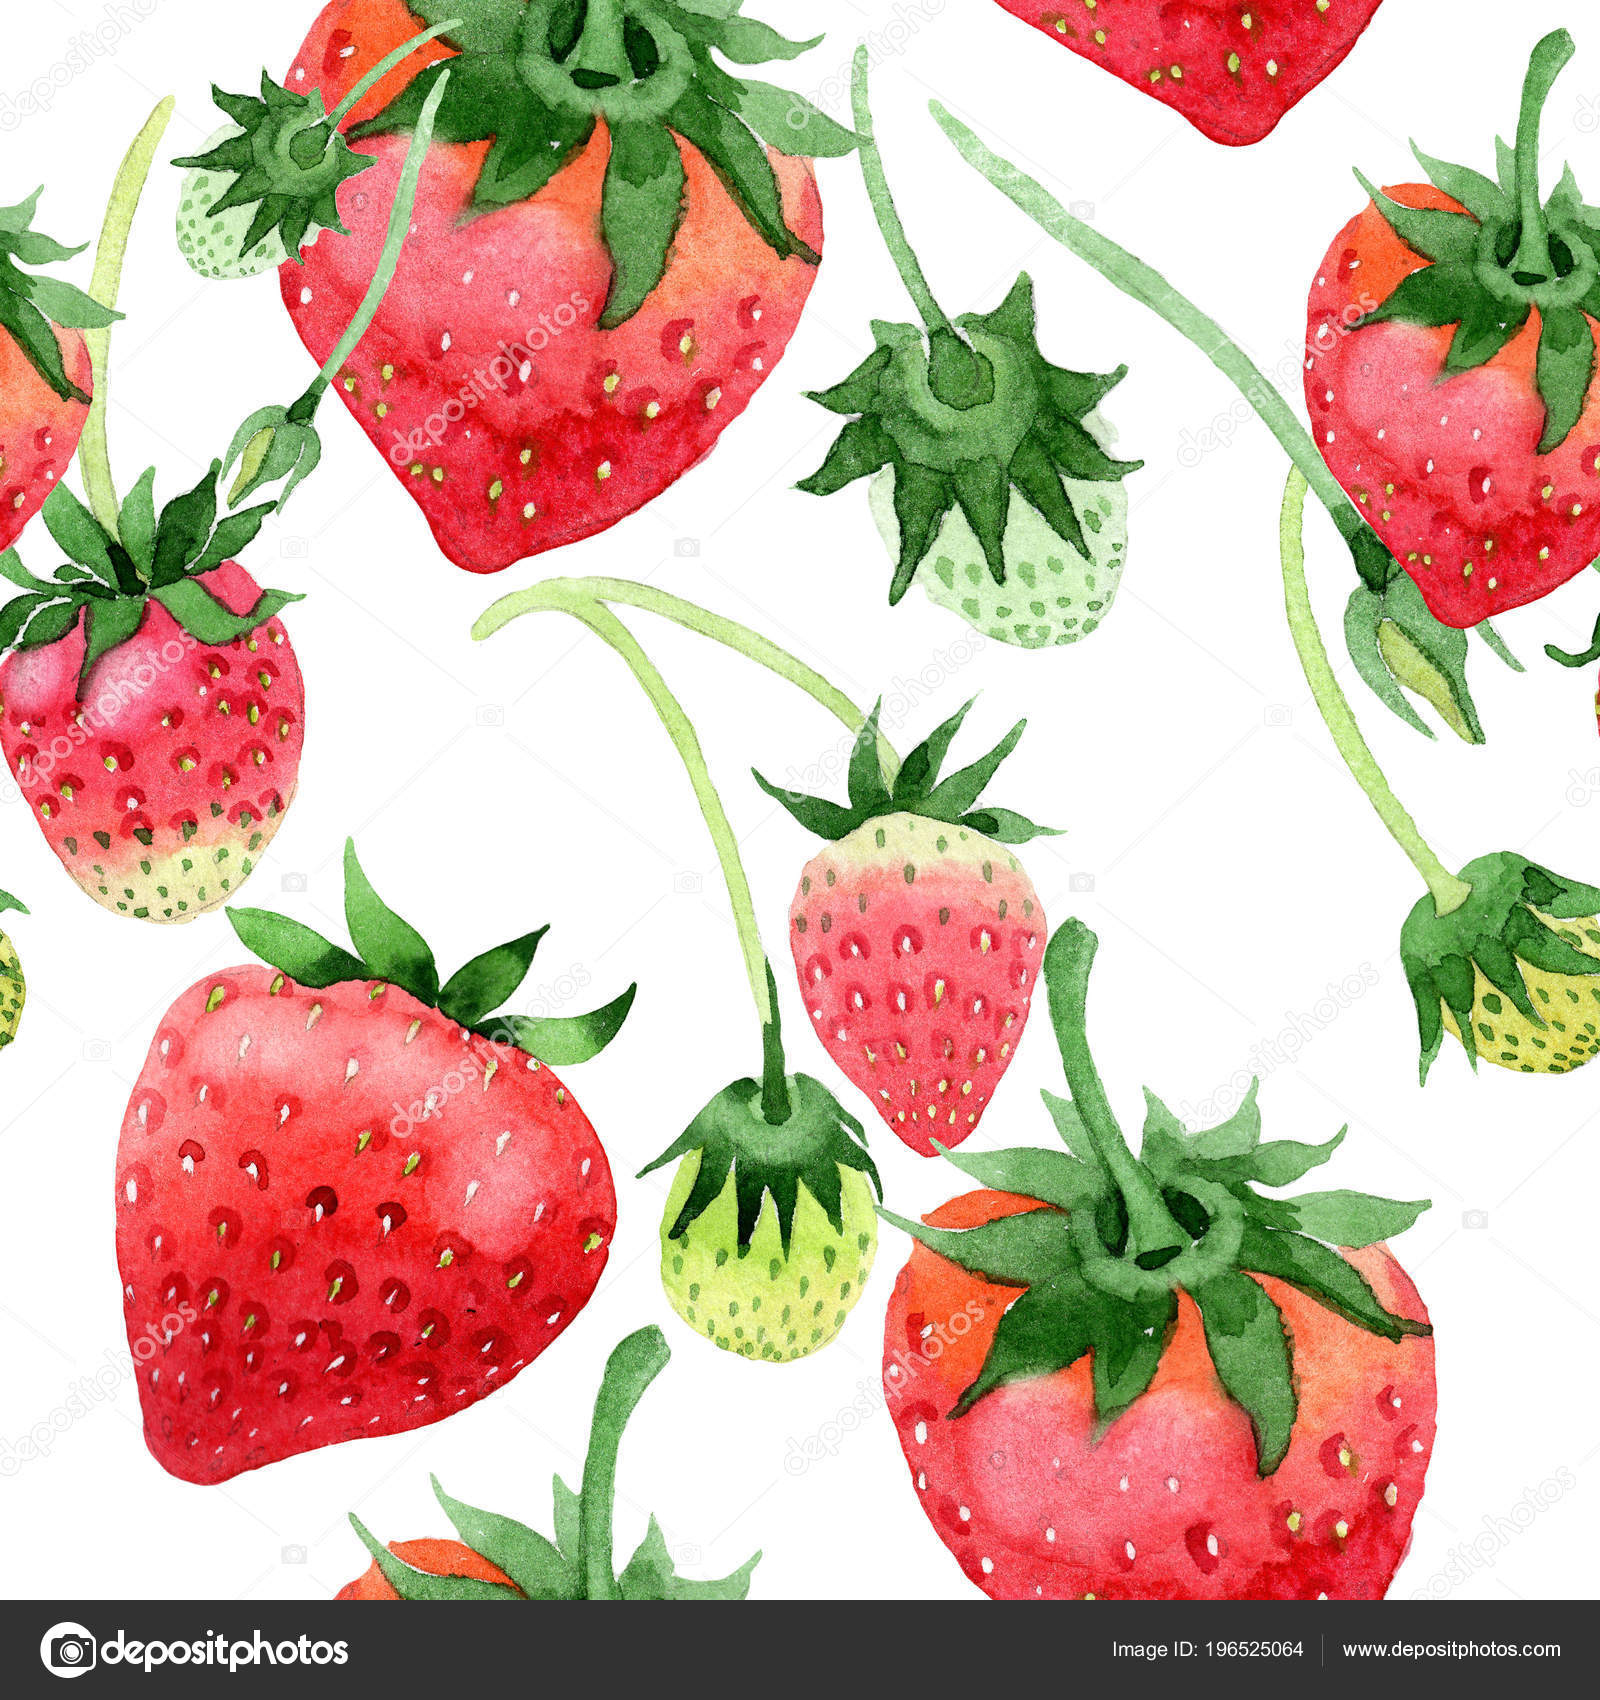 Pictures Eat Healthy Wallpaper Red Strawberries Healthy